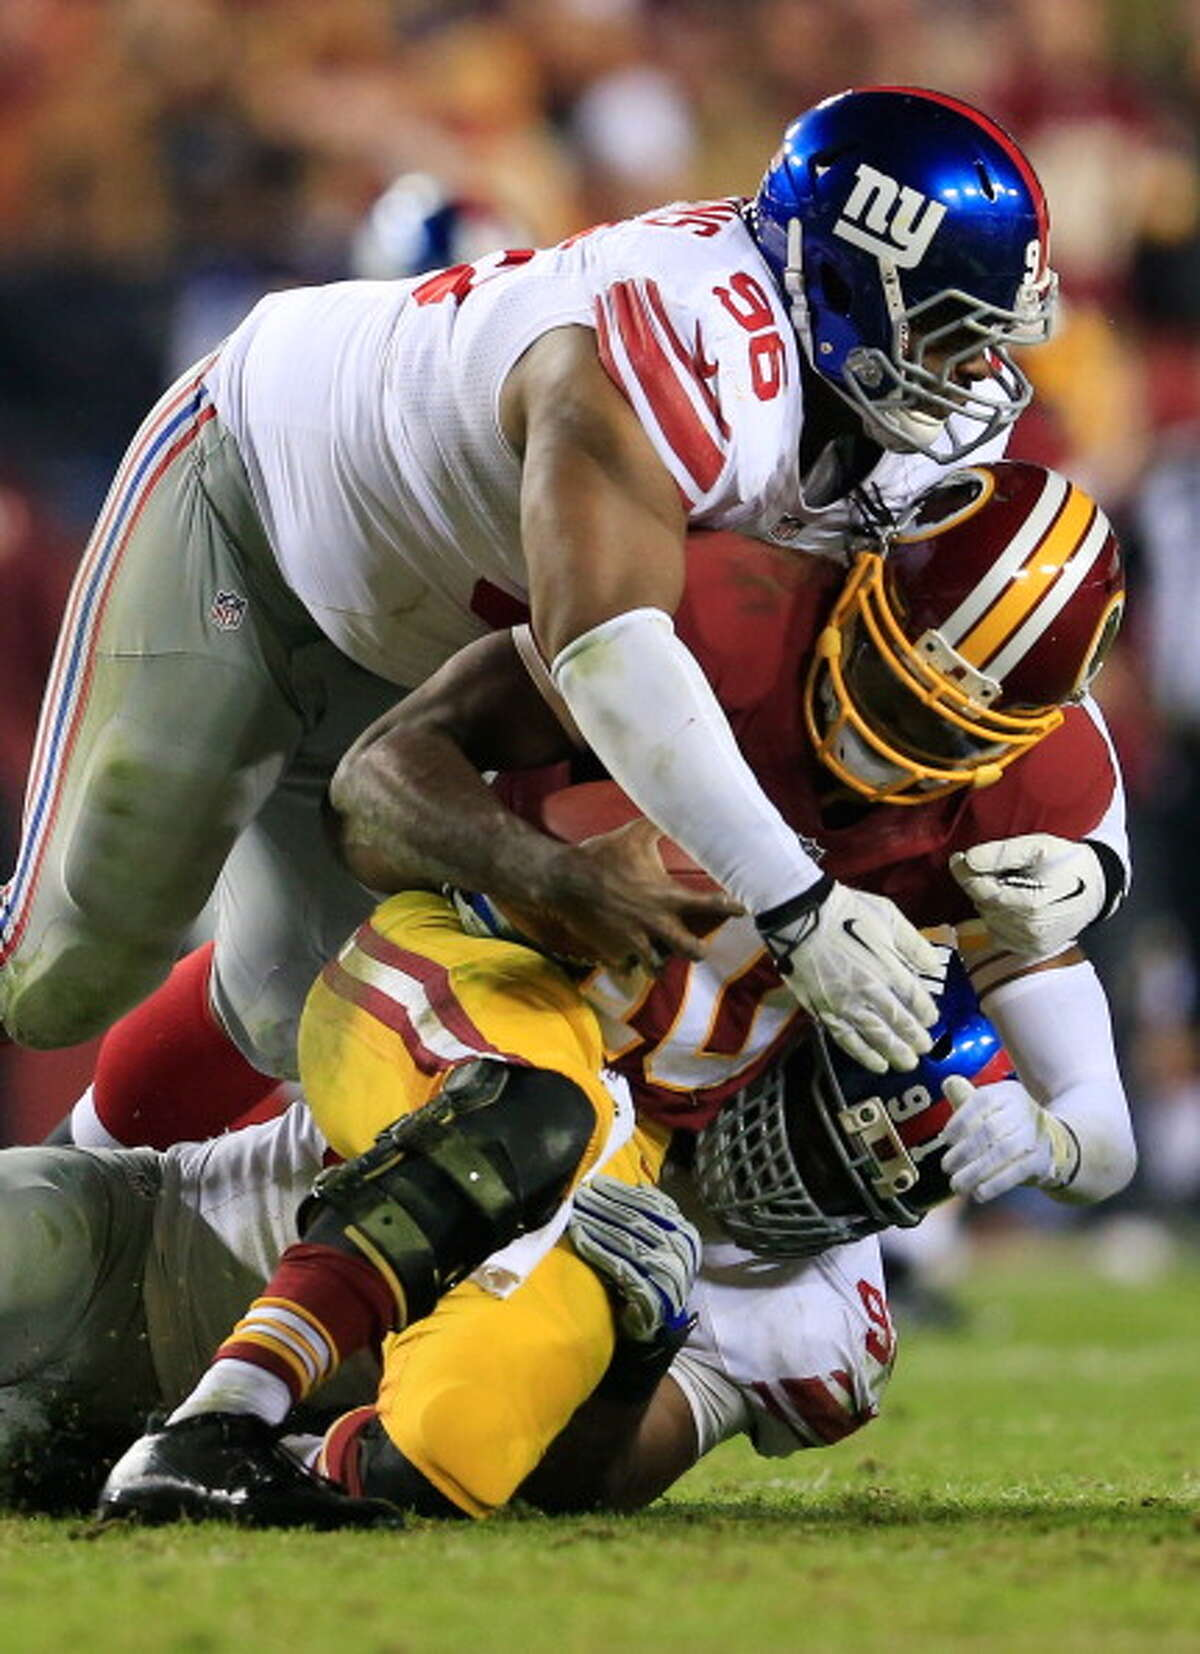 LANDOVER, MD - DECEMBER 01: Defensive end Justin Tuck #91 and defensive tackle Johnathan Hankins #96 of the New York Giants sack quarterback Robert Griffin III #10 of the Washington Redskins during the fourth quarter of the Giants 24-17 win at FedExField on December 1, 2013 in Landover, Maryland.